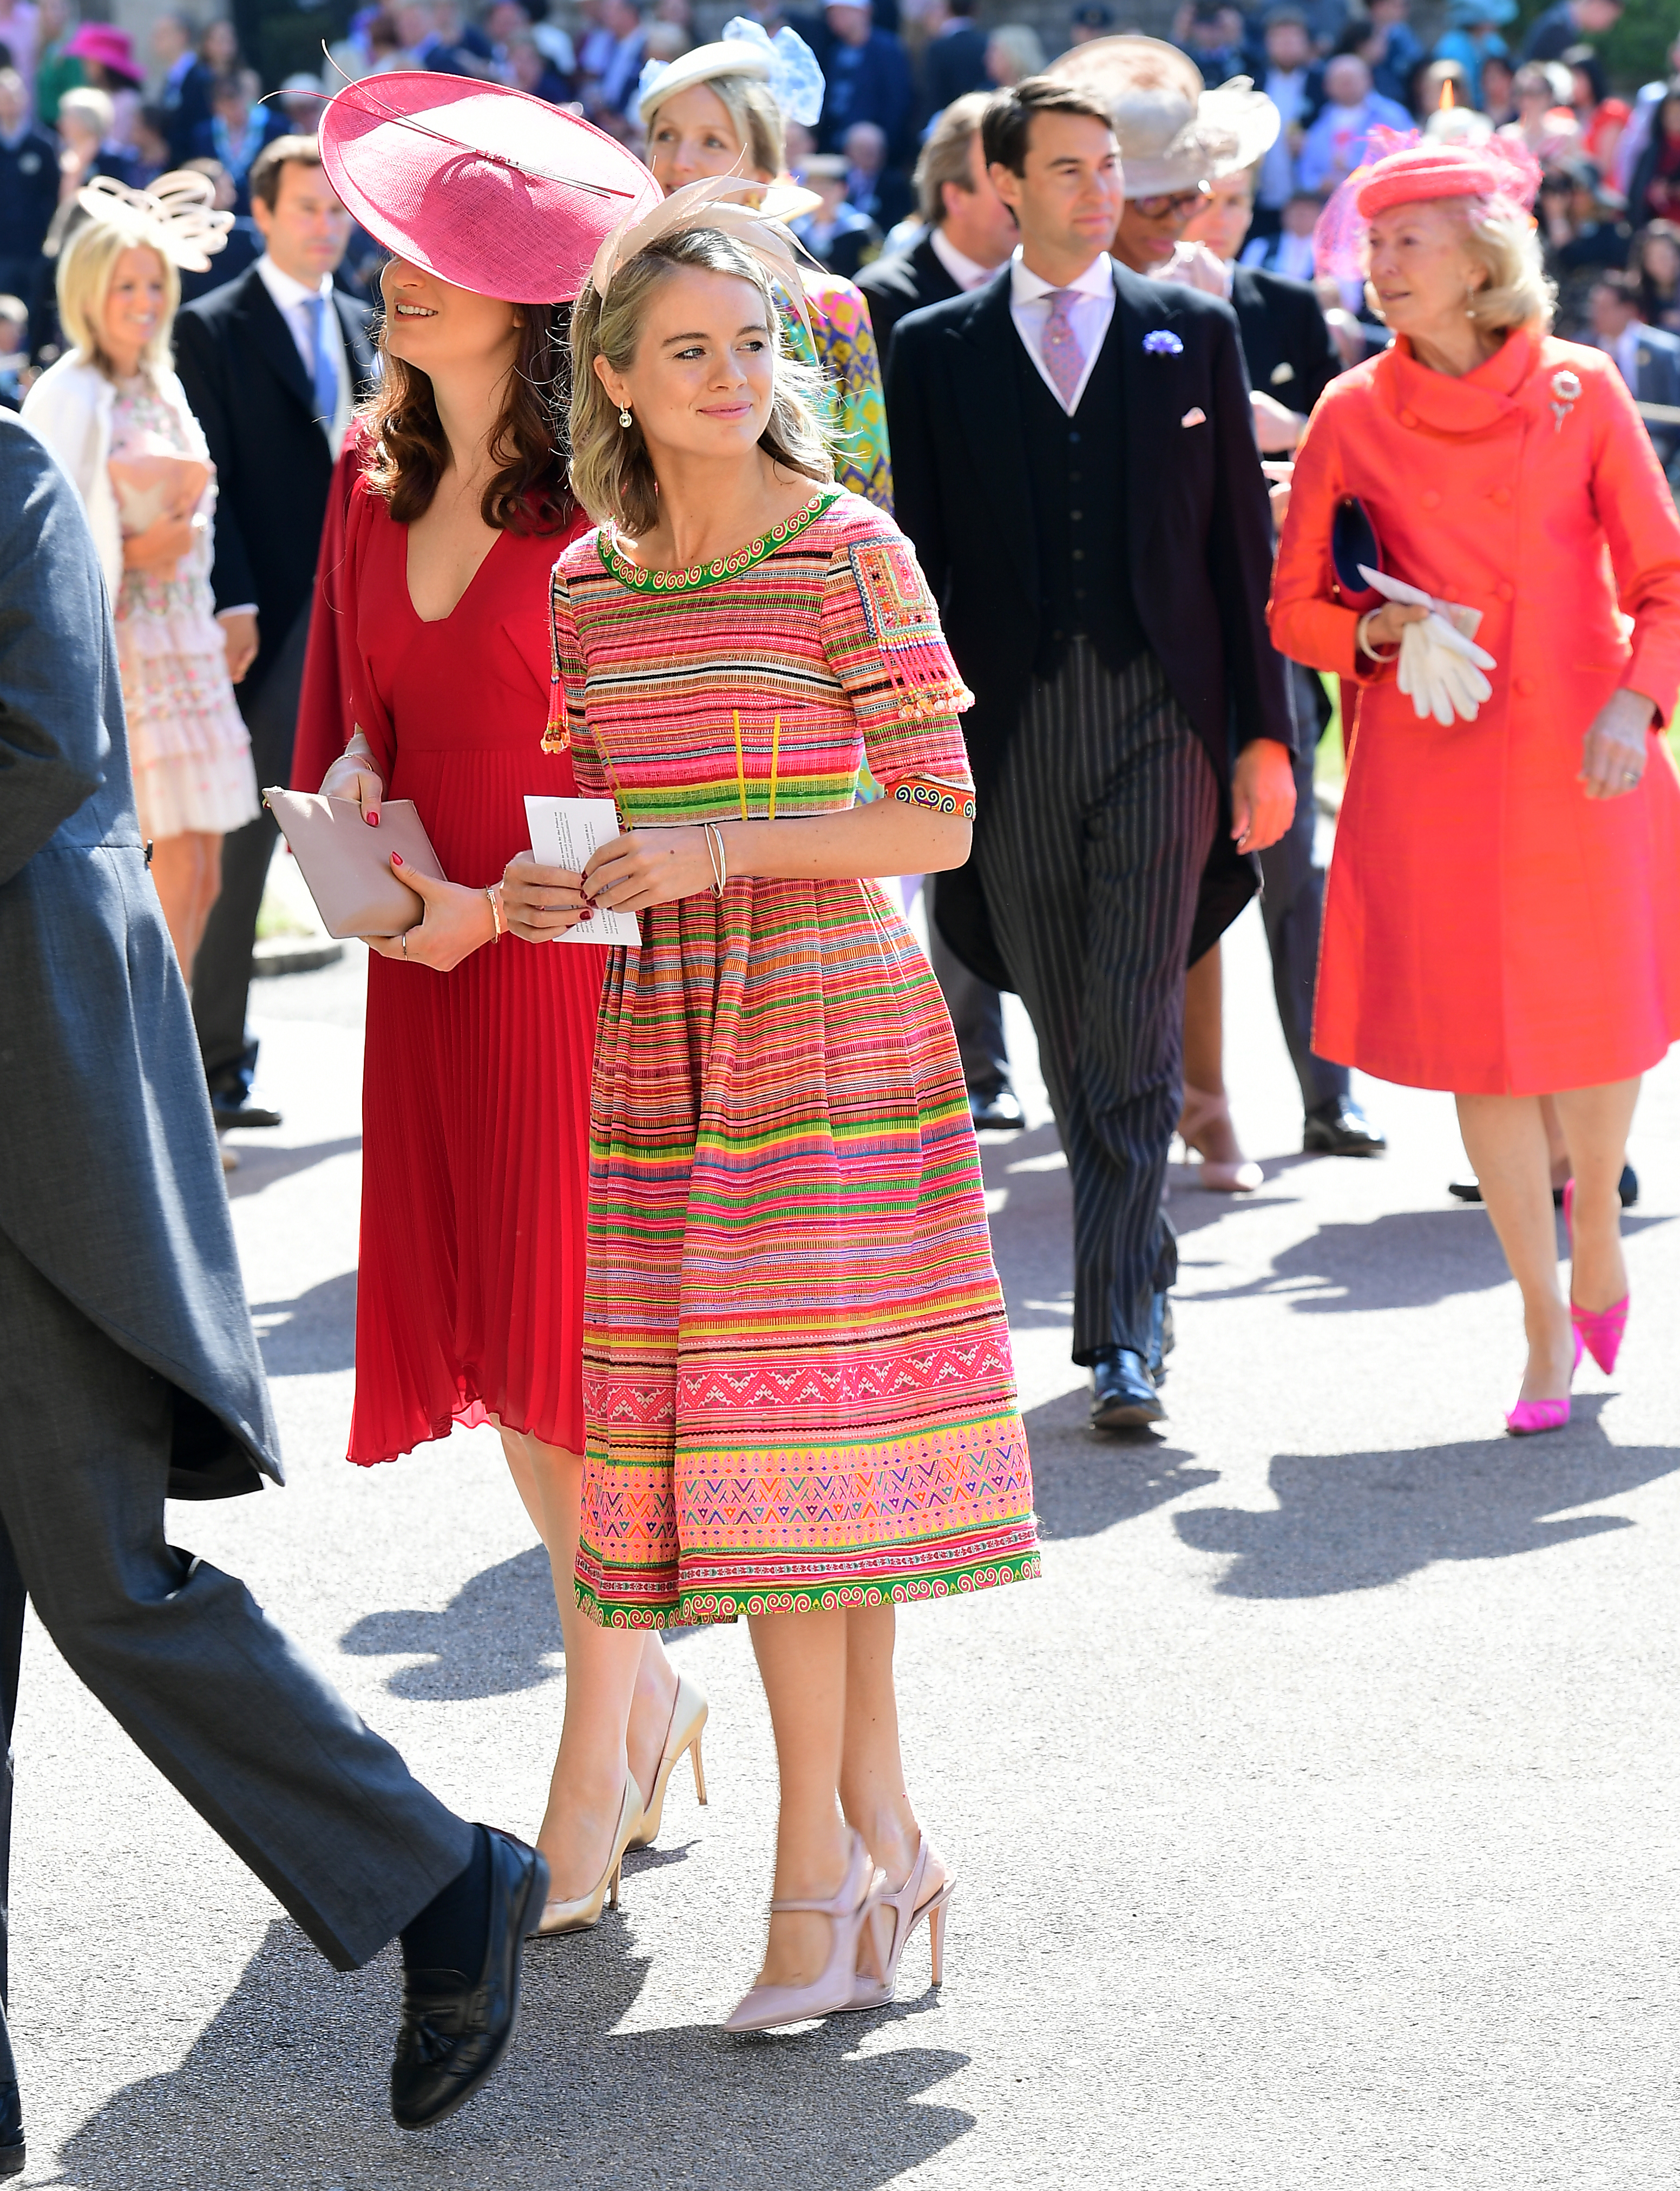 Add to lightbox Royal wedding Cressida Bonas arrives at St George's Chapel at Windsor Castle for the wedding of Meghan Markle and Prince Harry. (Ian West/PA)